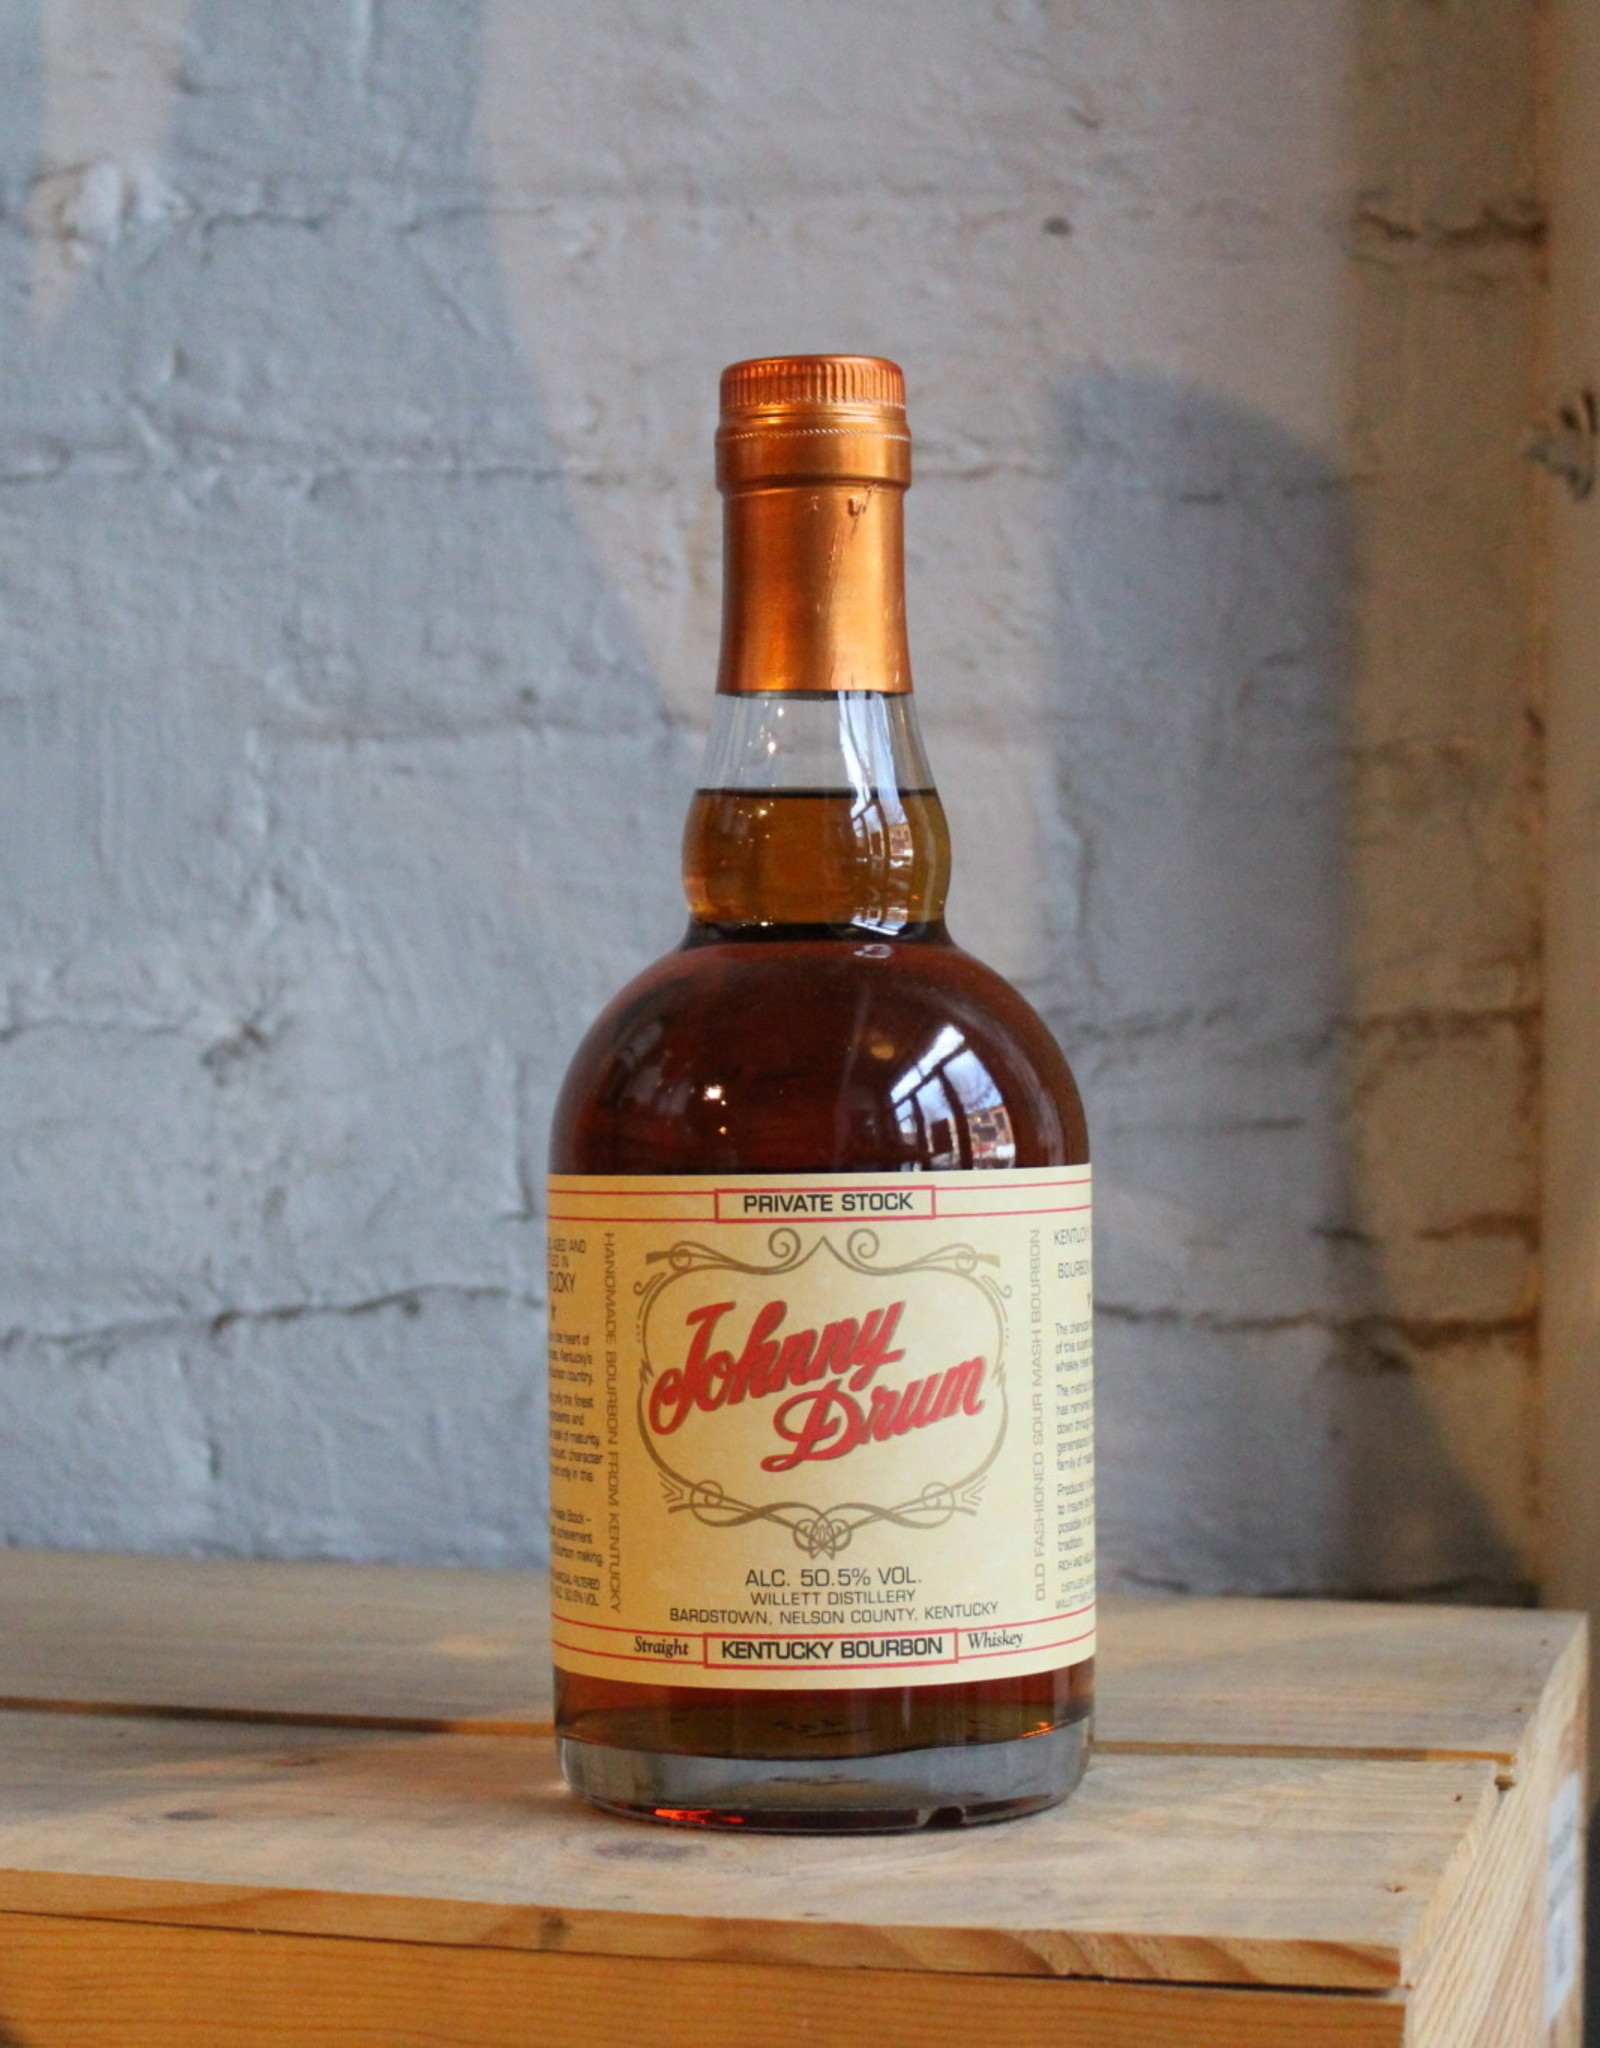 Johnny Drum Kentucky Bourbon Private Stock - Bardstown, KY (750ml)